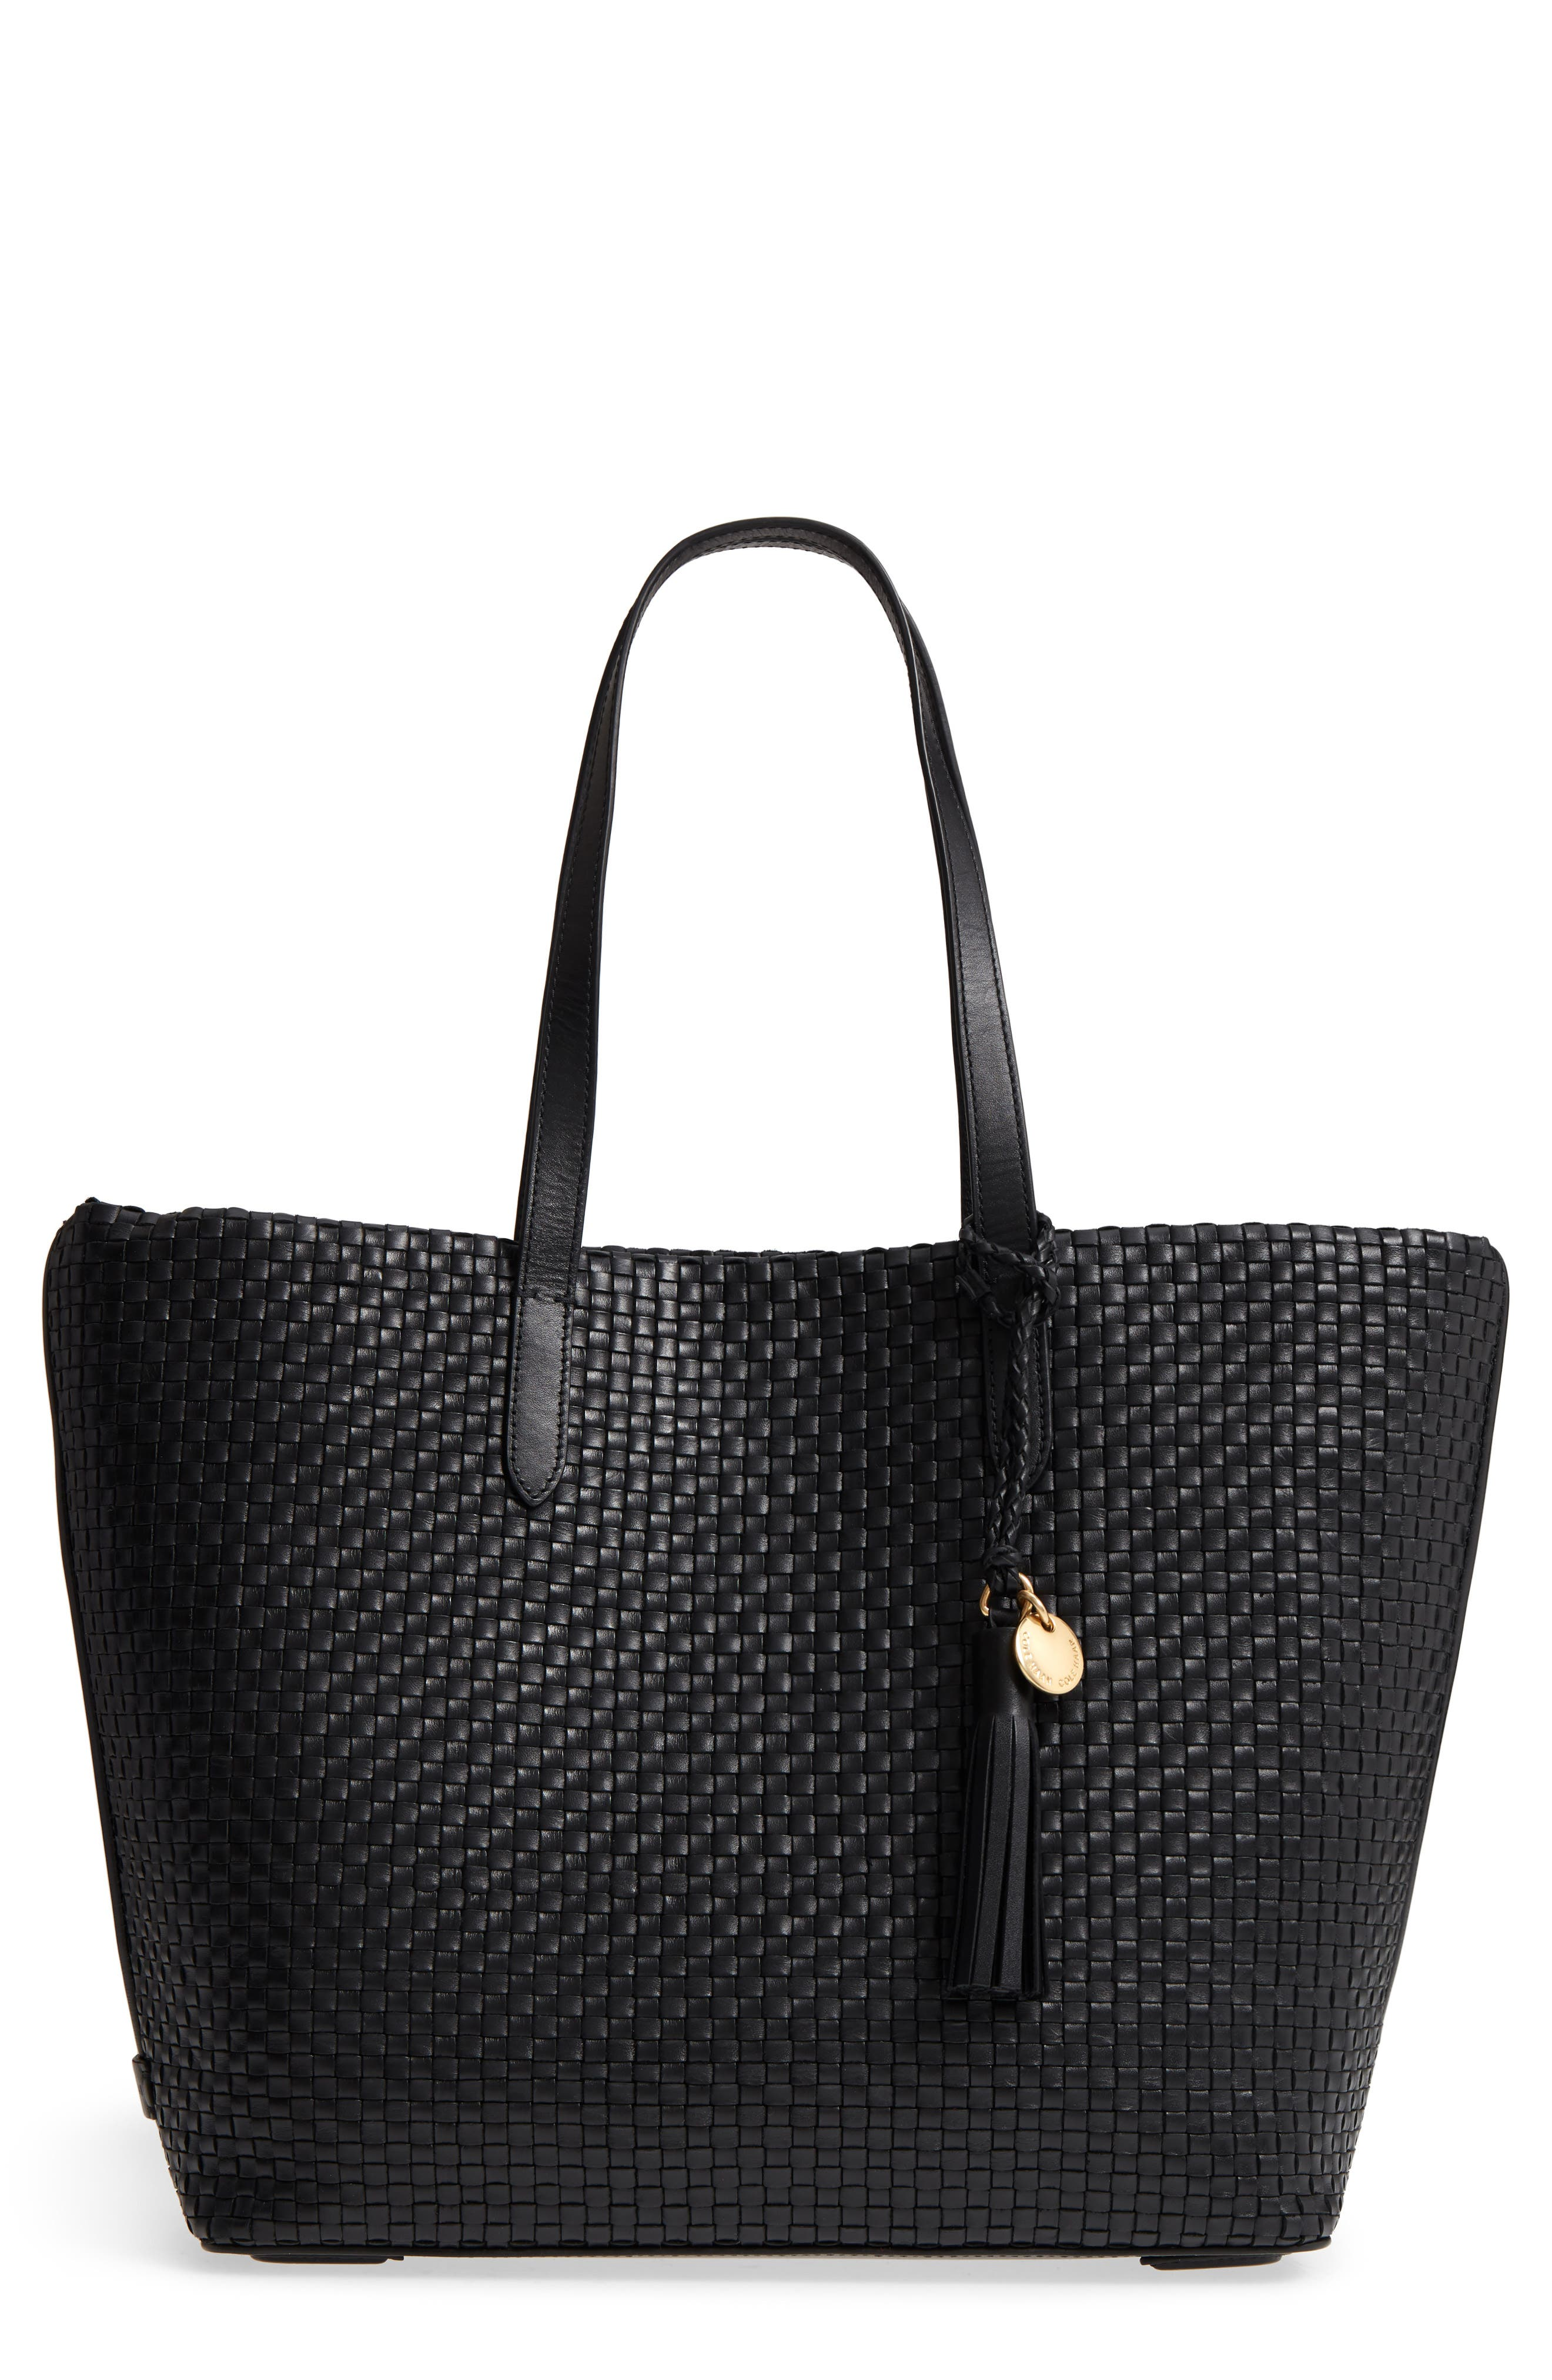 Payson RFID Woven Leather Tote,                         Main,                         color, 001